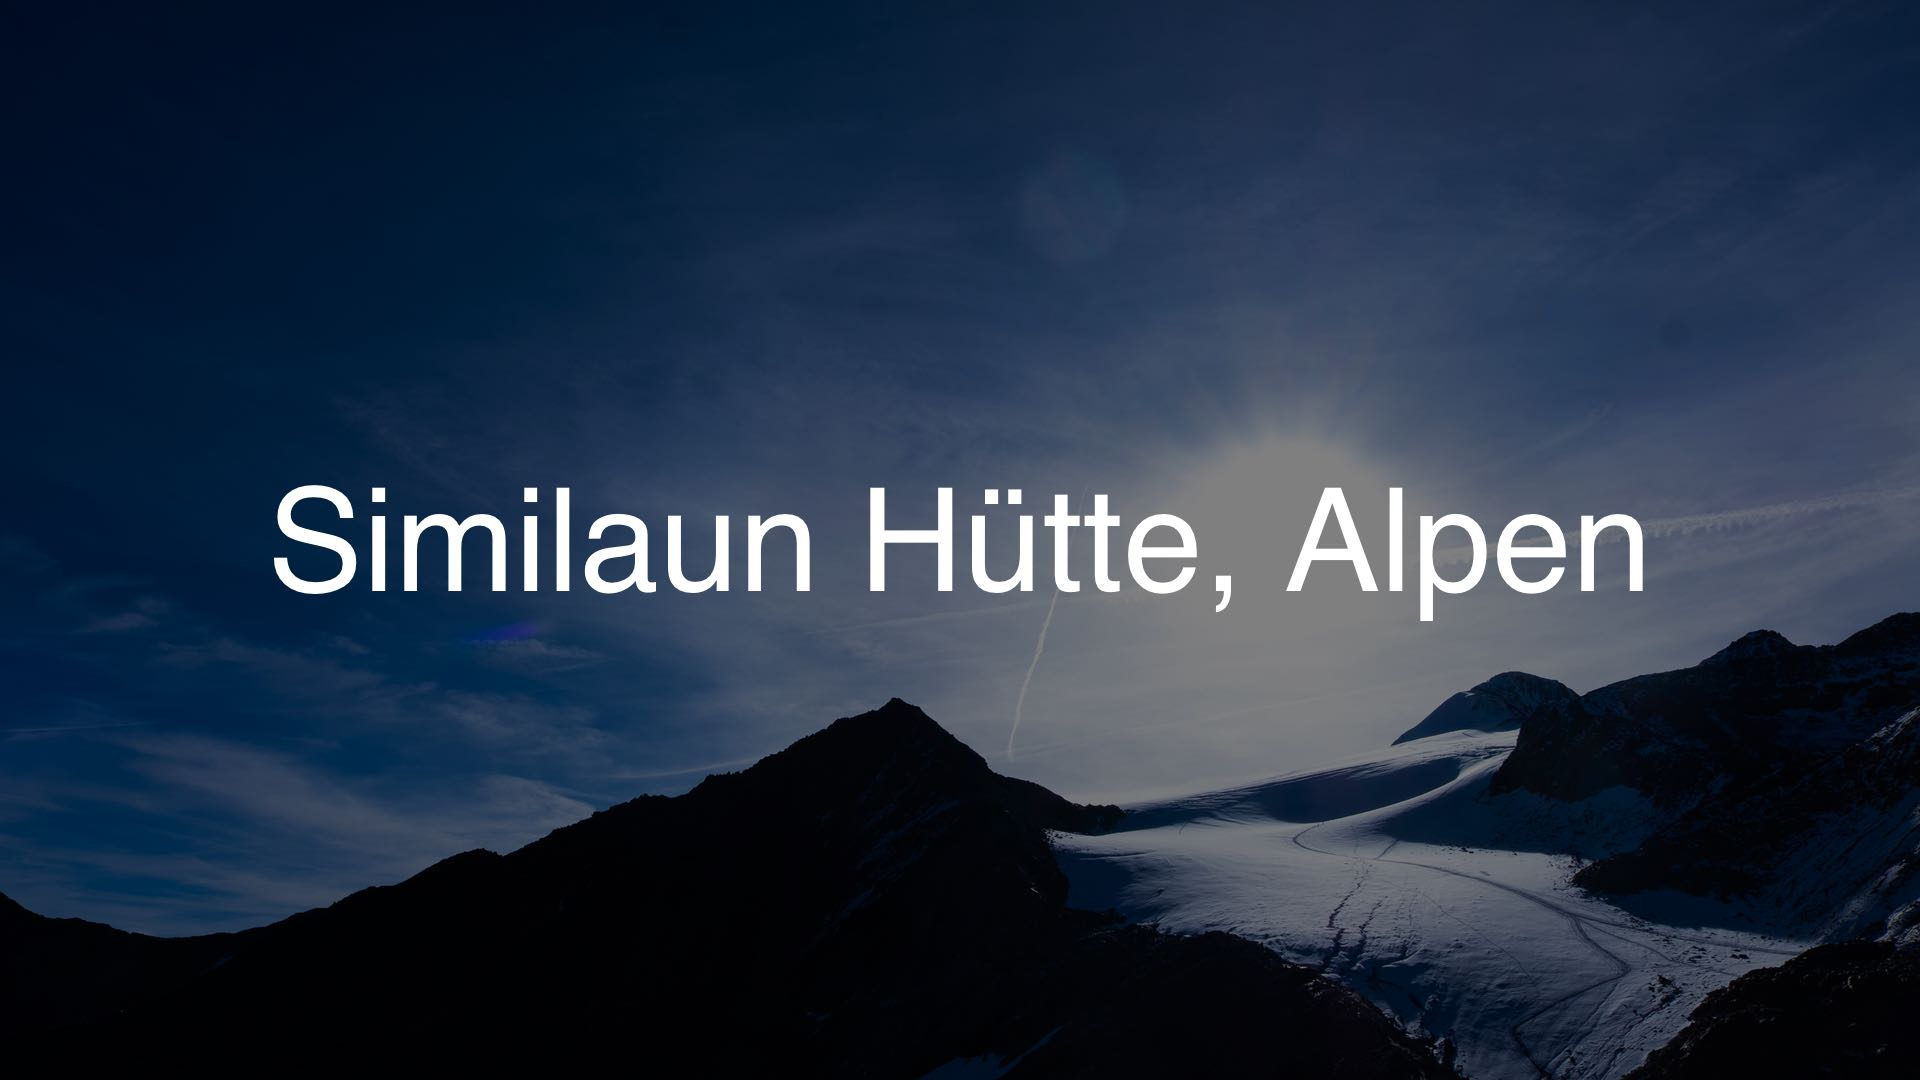 Similaun Hütte 1920×1080 dark